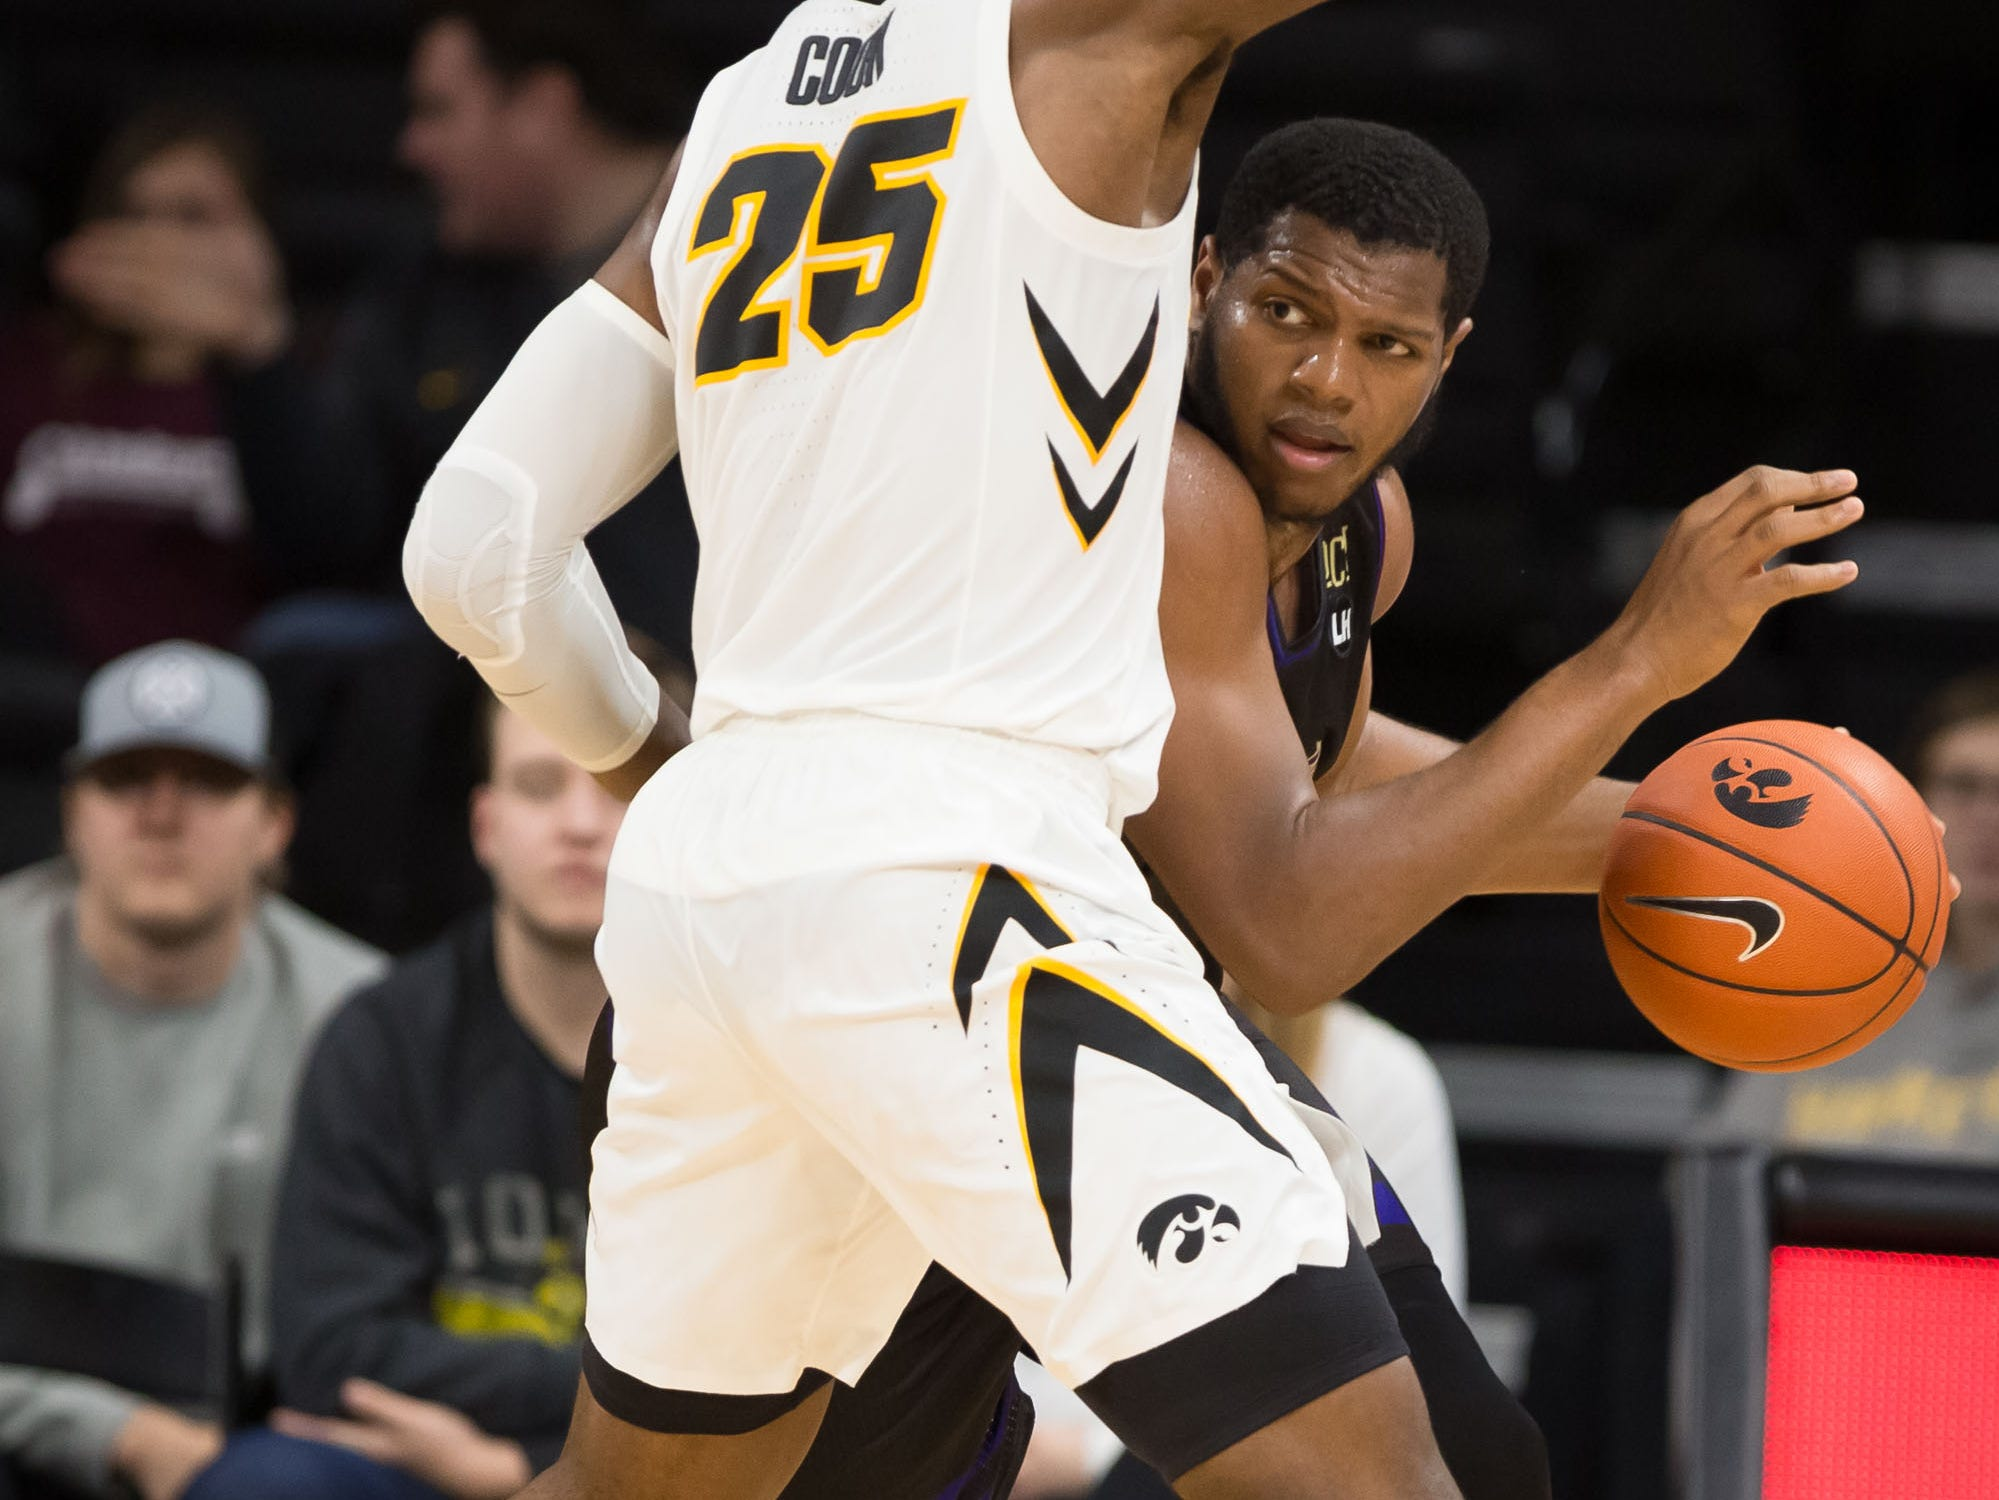 Western Carolina junior forward Carlos Dotson (4) drives against Iowa junior forward Tyler Cook (25) in the second half at Carver Hawkeye Arena in Iowa City on Tuesday, Dec. 18, 2018.